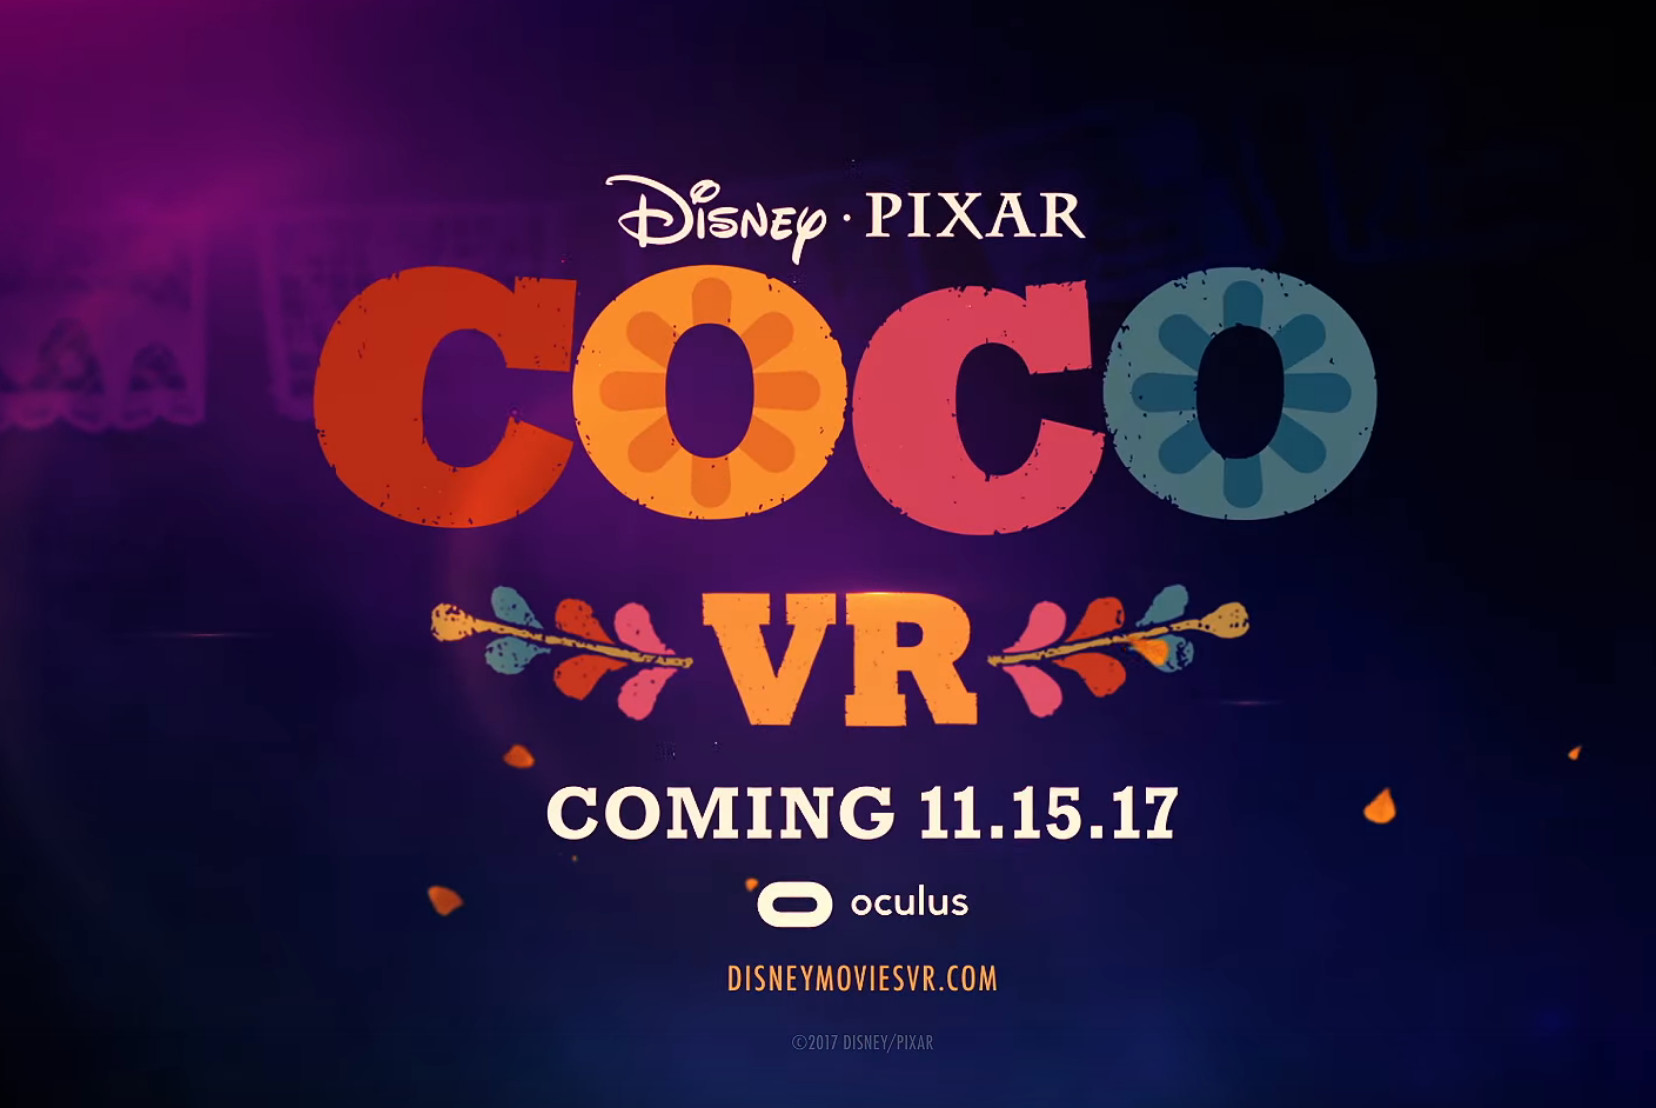 Pixar Releasing Their First VR Experience Called 'Coco VR' On Oculus Rift